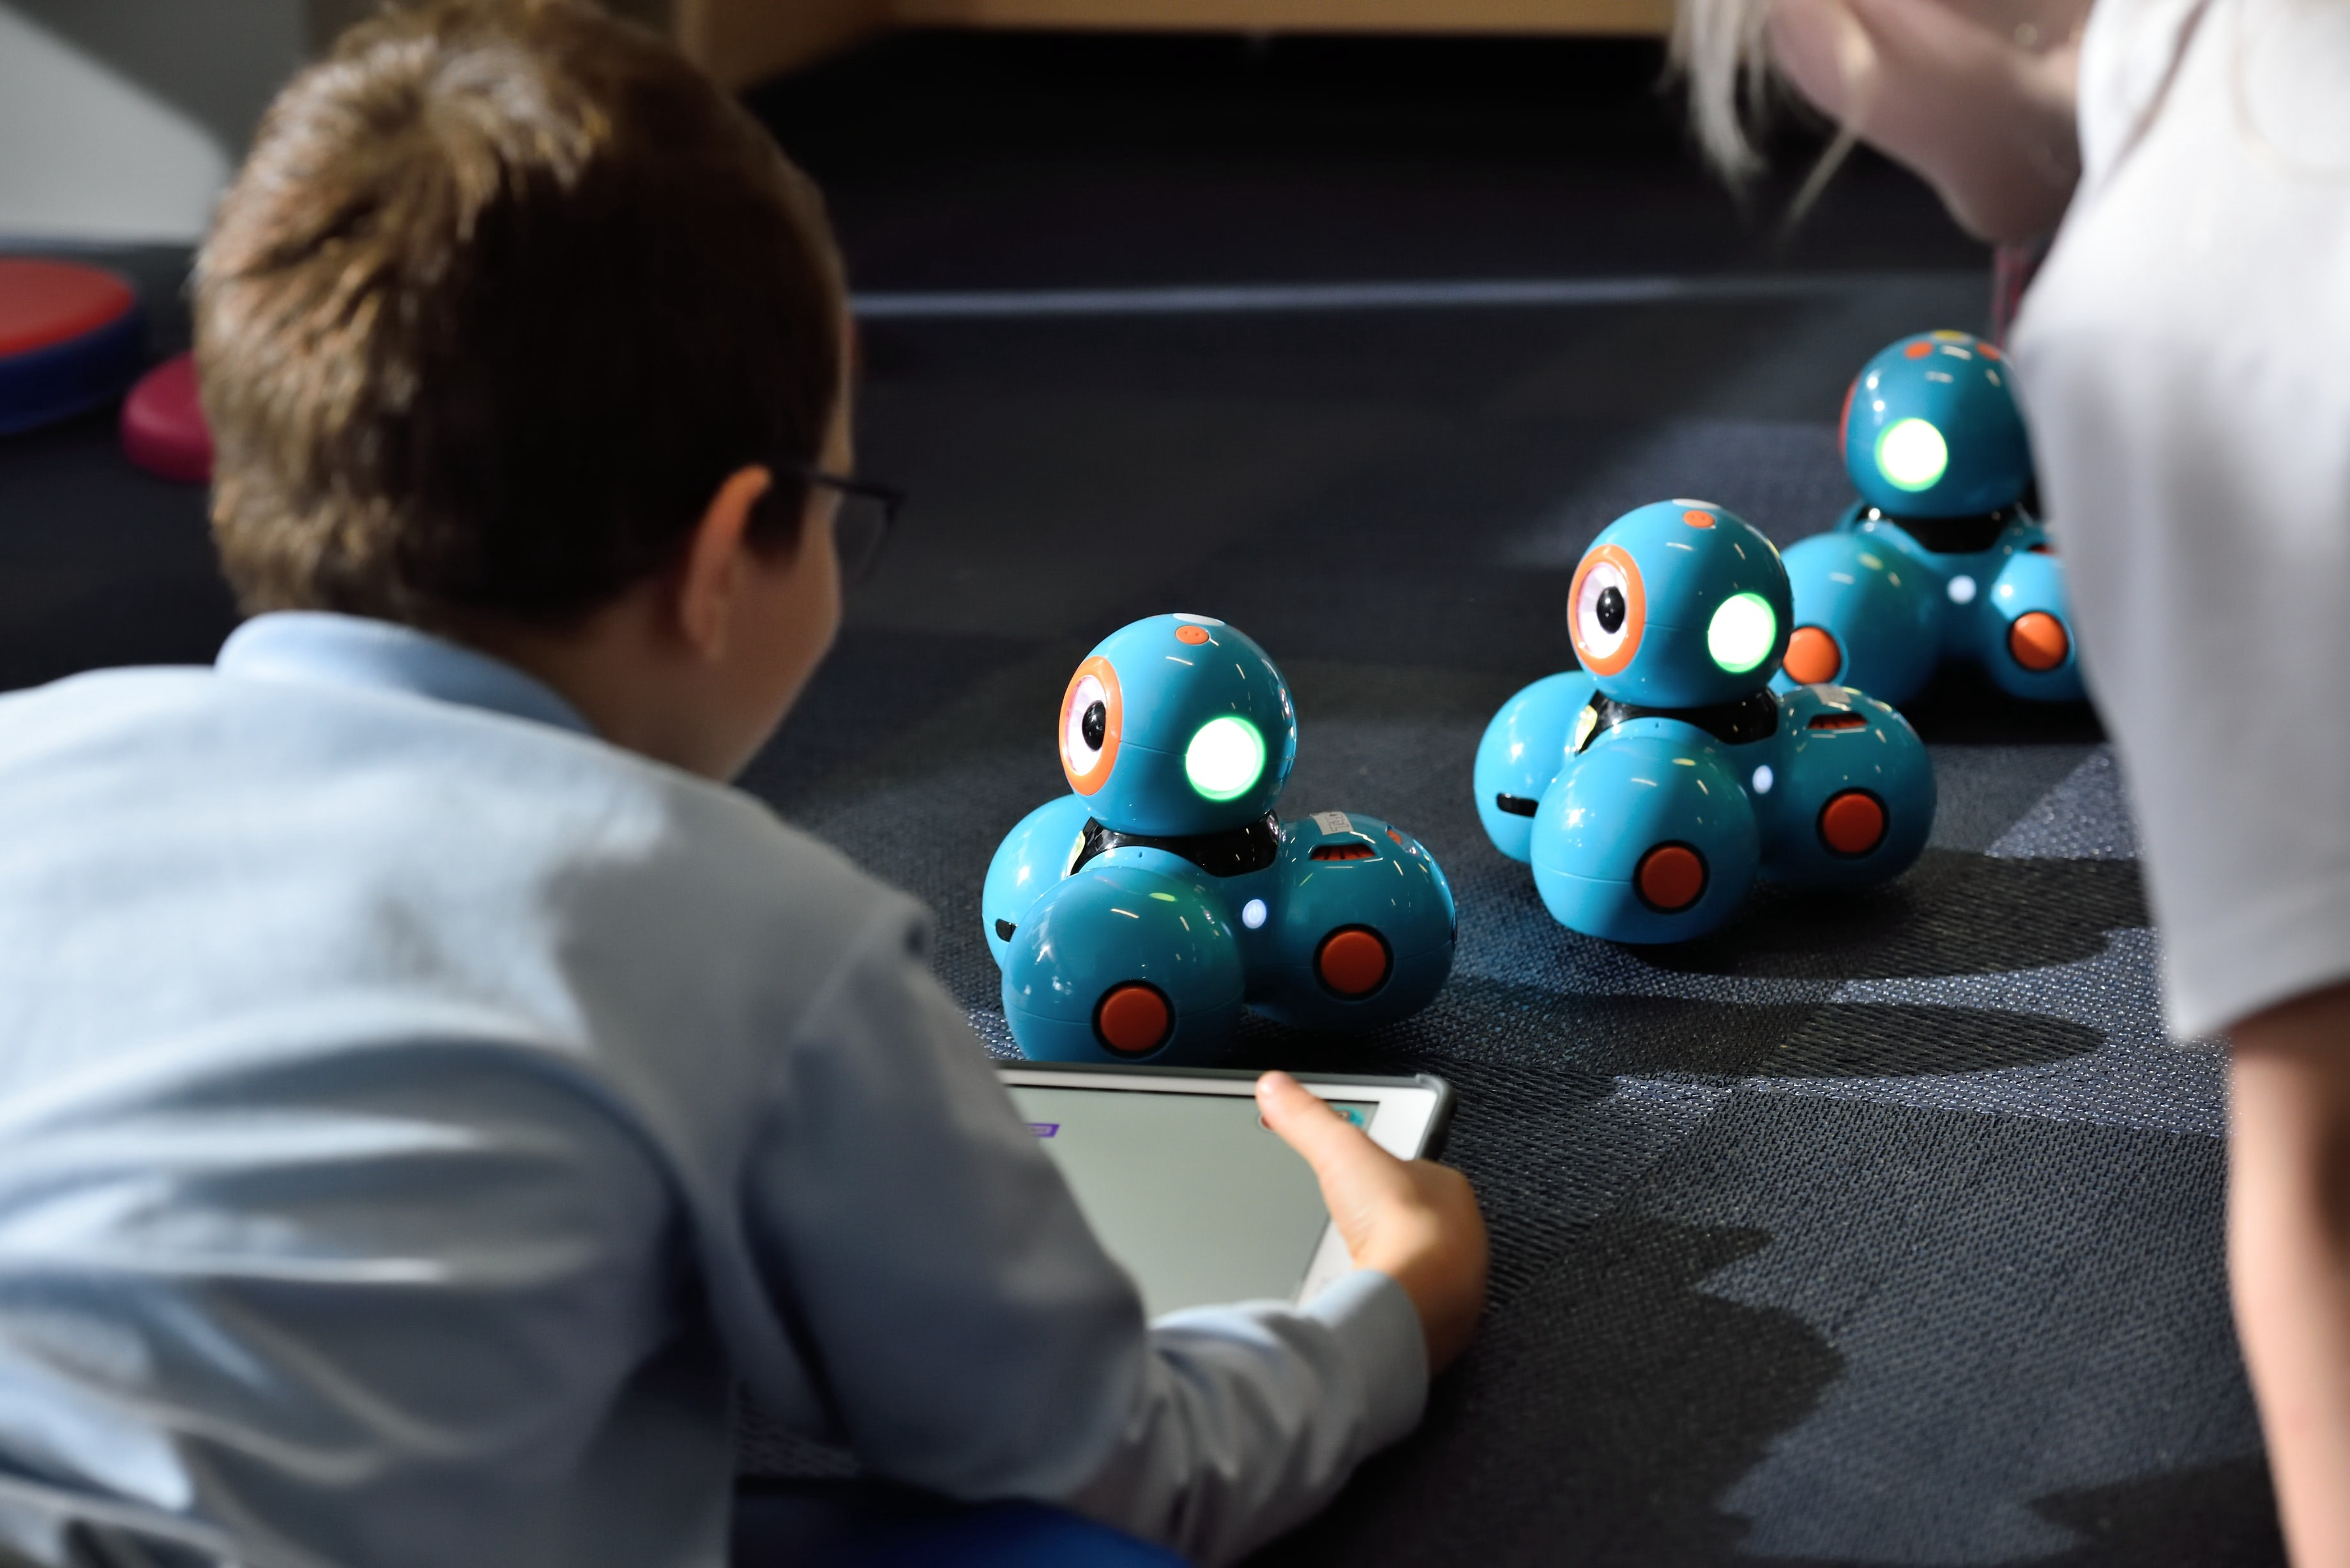 Innovation Labs Roblox Toys The Expanding Role Of Toys In Education And Parenting By Richard Yao Ipg Media Lab Oct 2020 Medium